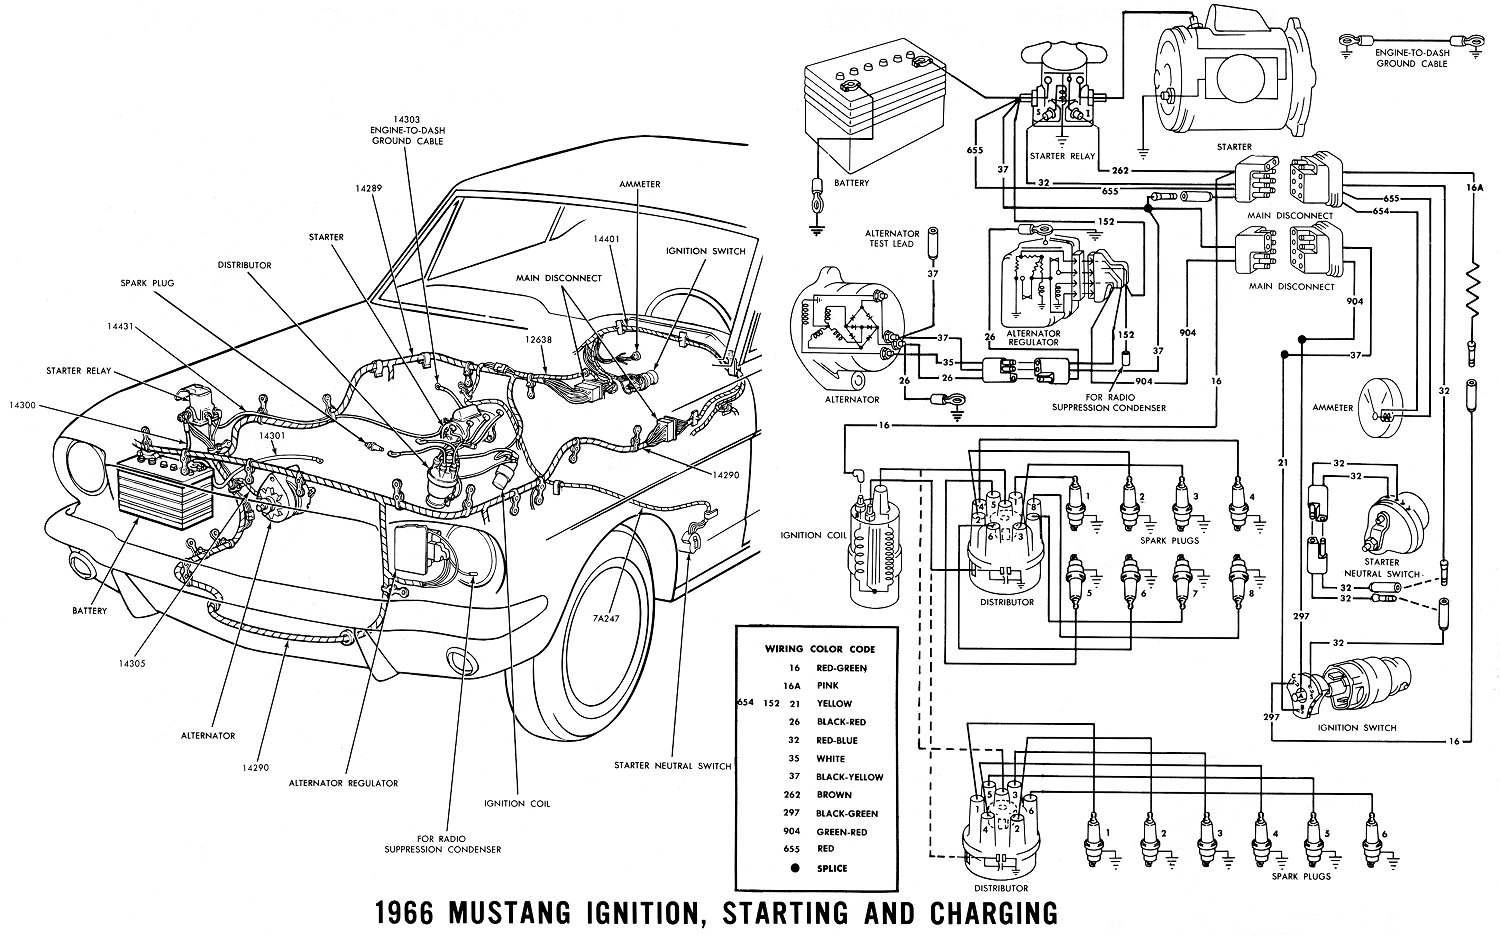 1965 Chevy Pickup Wiring Harness Library C10 Schematic 1966 Mustang Diagrams Average Joe Restoration 1969 Diagram Online